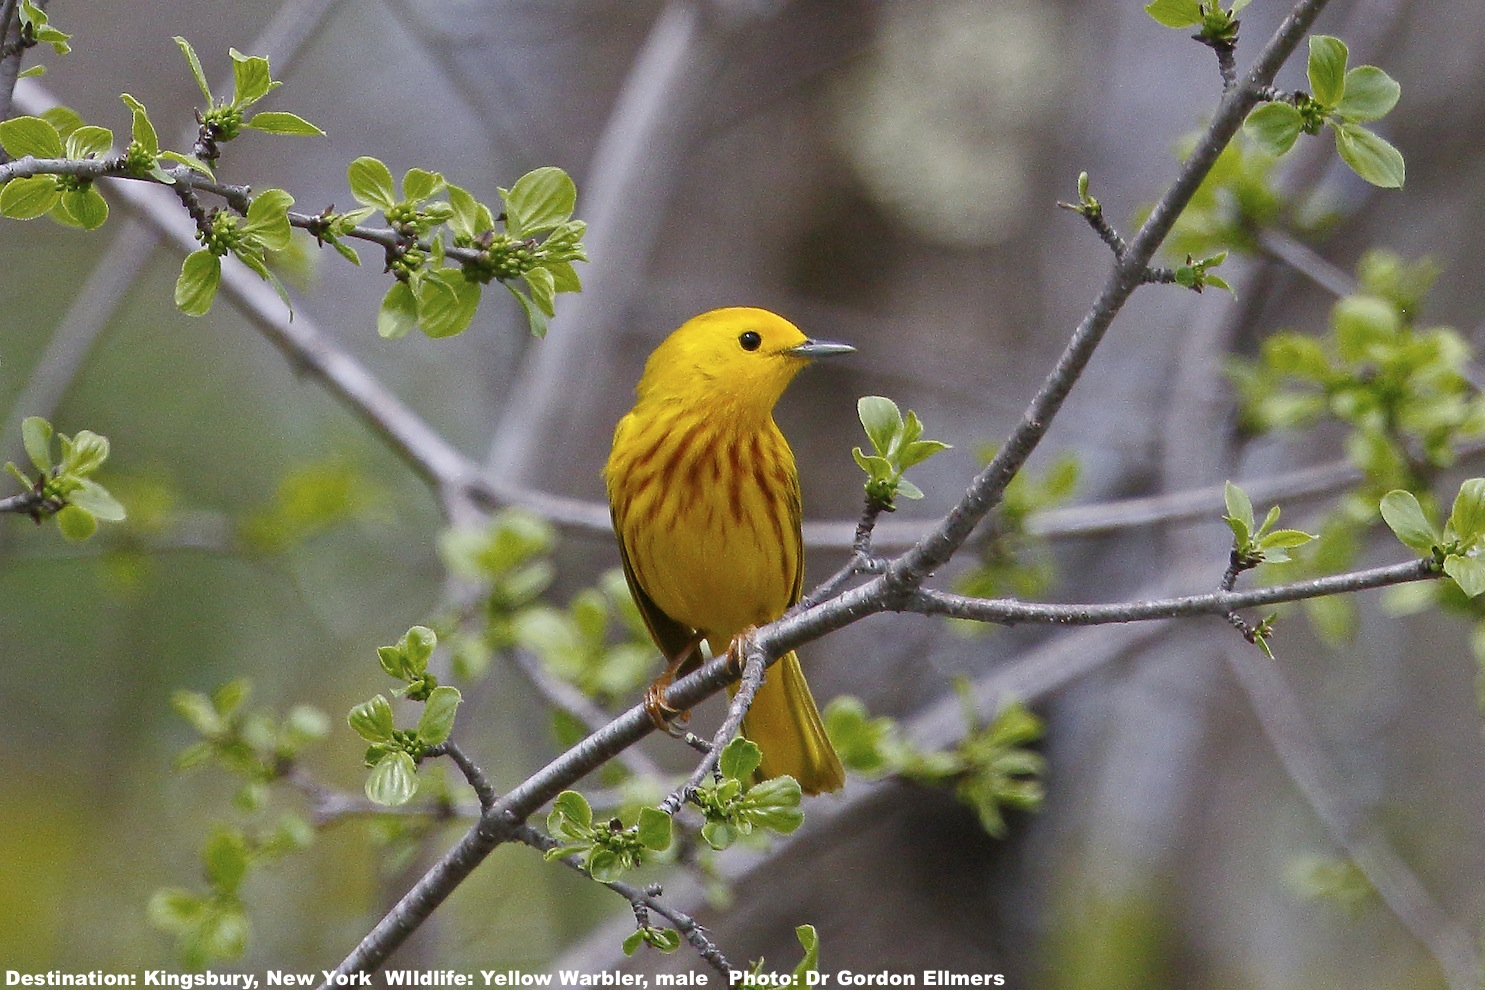 """Do you think he's a """"cute bird""""? Or did you get up a 4AM, grab binoculars, camera & species app specifically to find, identify and life-list him? In either case this yellow warbler is one of 41 types of warbler found in New York State. Image: ©Dr. Gordon Ellmers"""